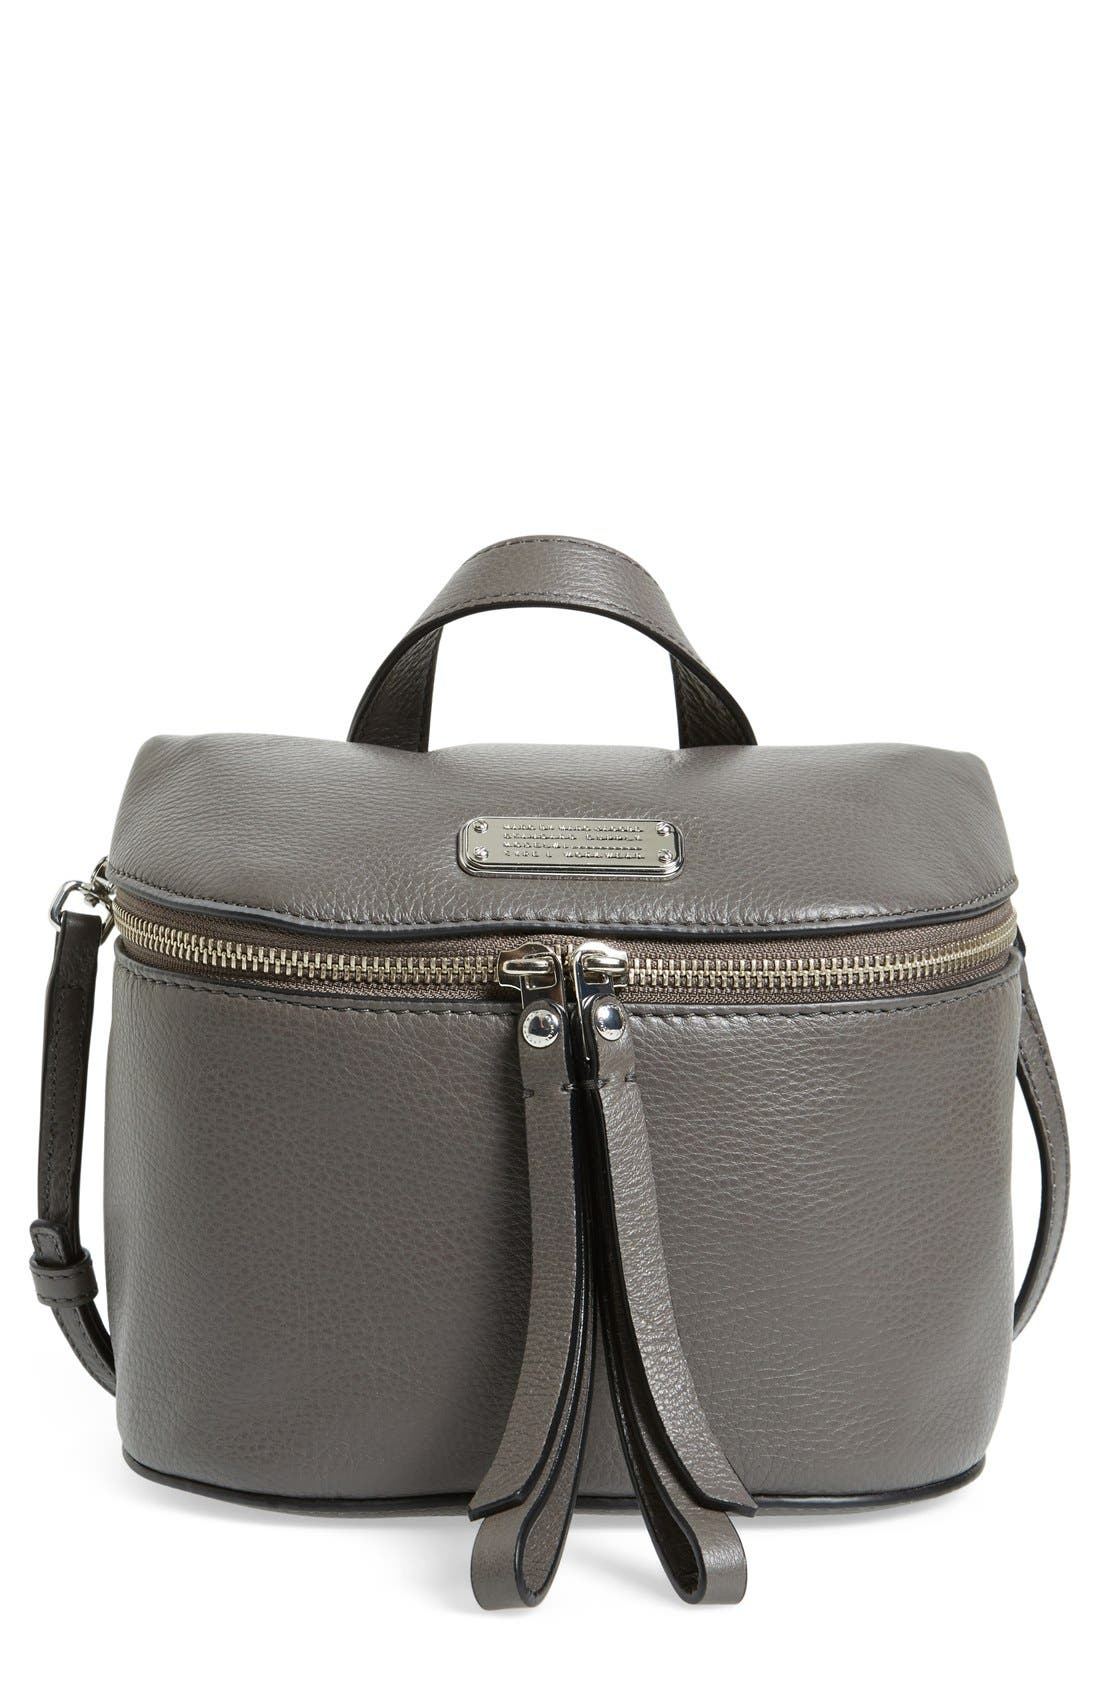 Main Image - MARC BY MARC JACOBS 'Canteen' Leather Crossbody Bag